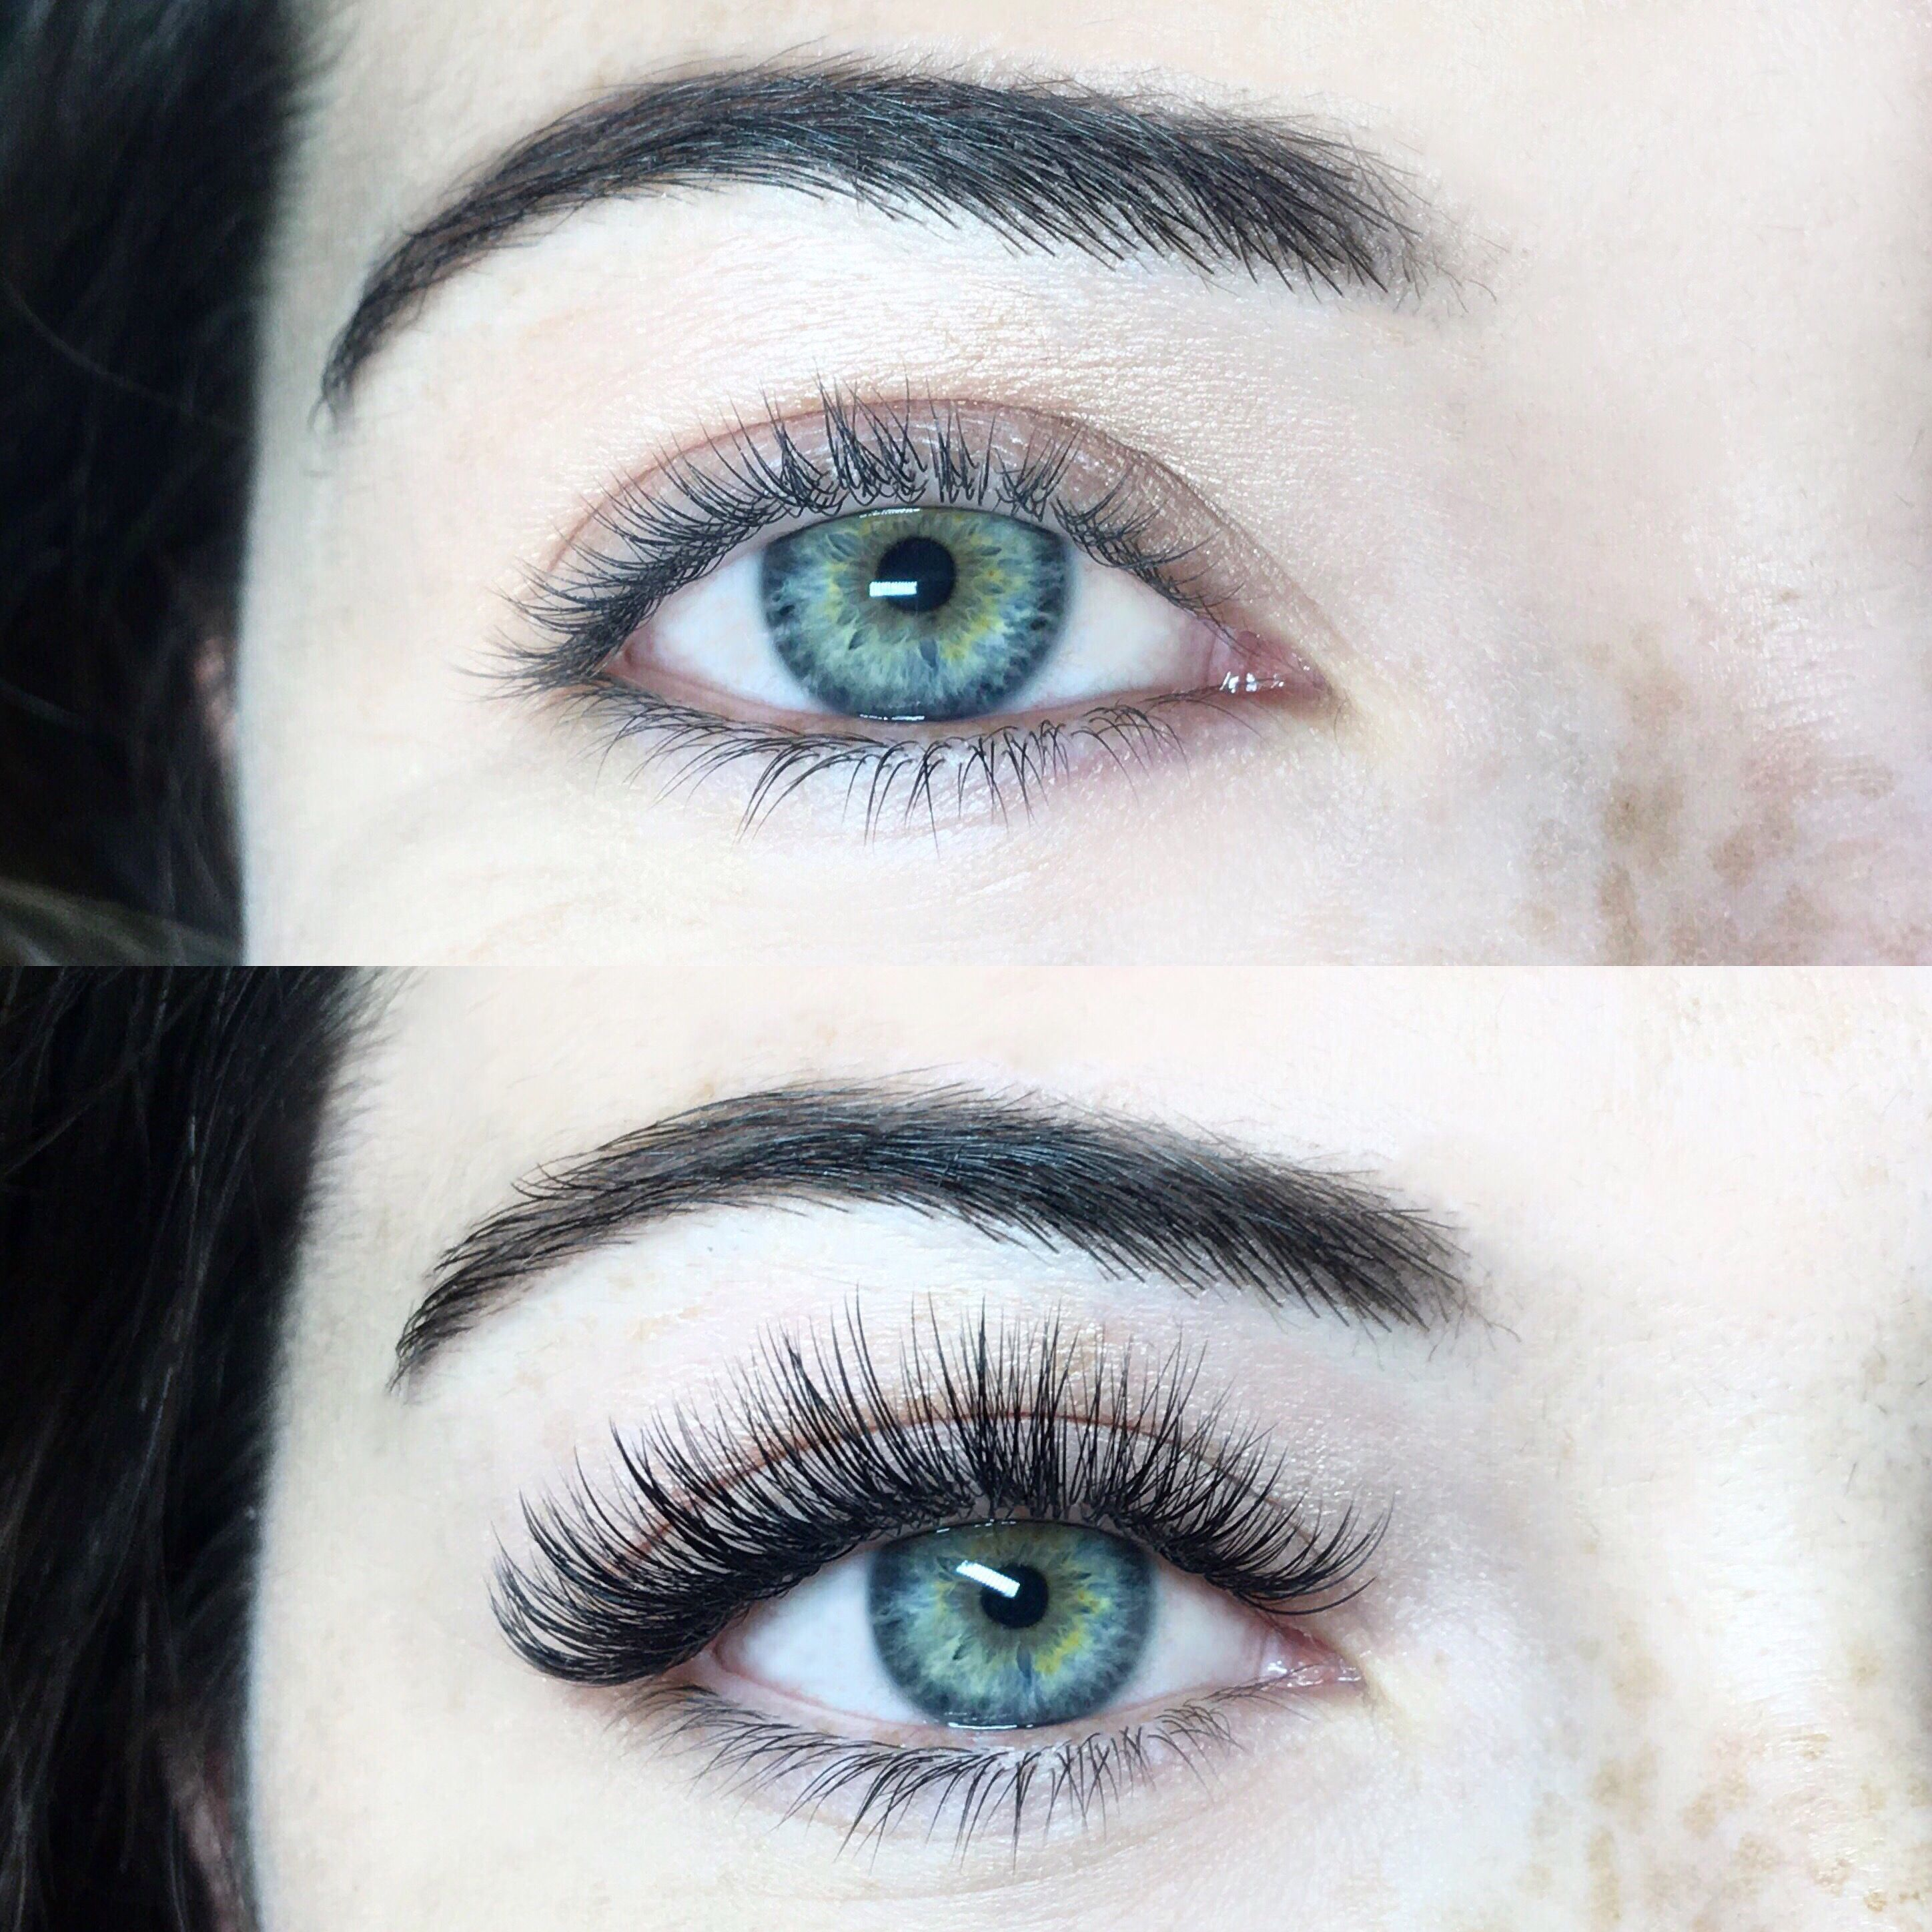 Fake Eyelashes Before And After Pictures